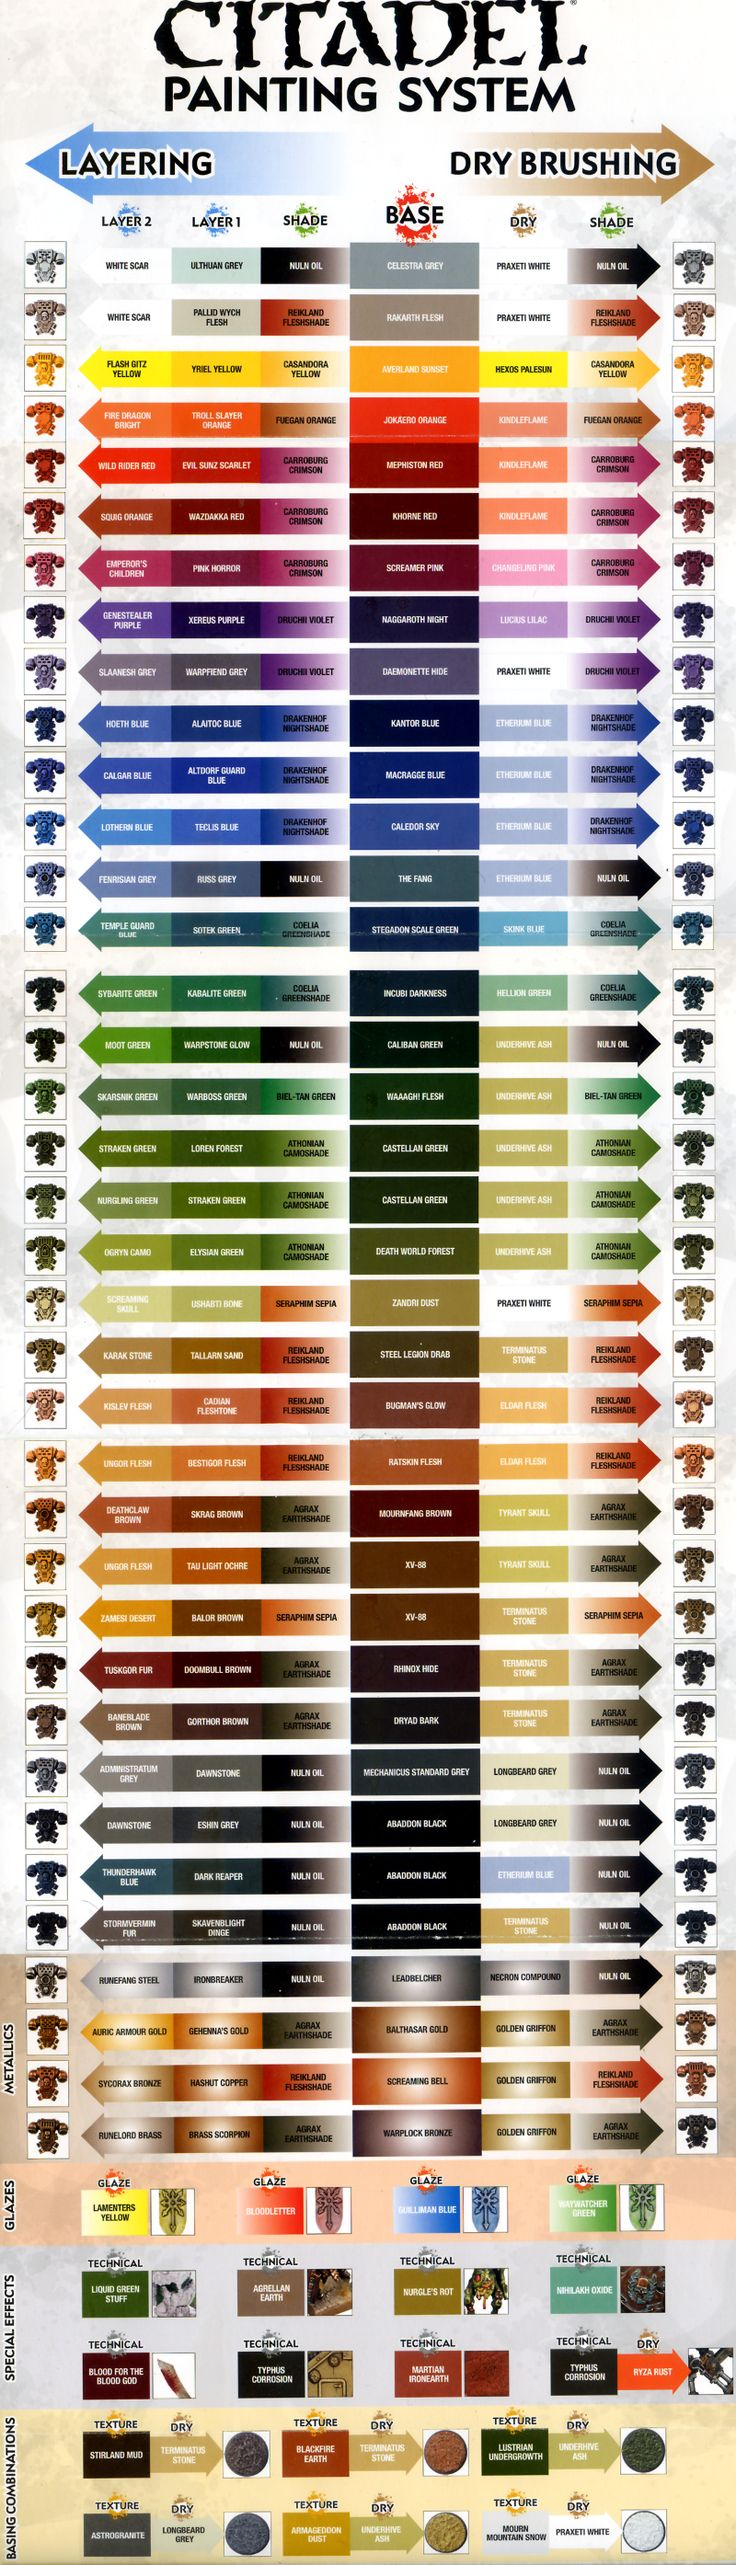 Painting Guide, Citadel Painting Chart Full - Citadel Painting Chart Full - Gallery